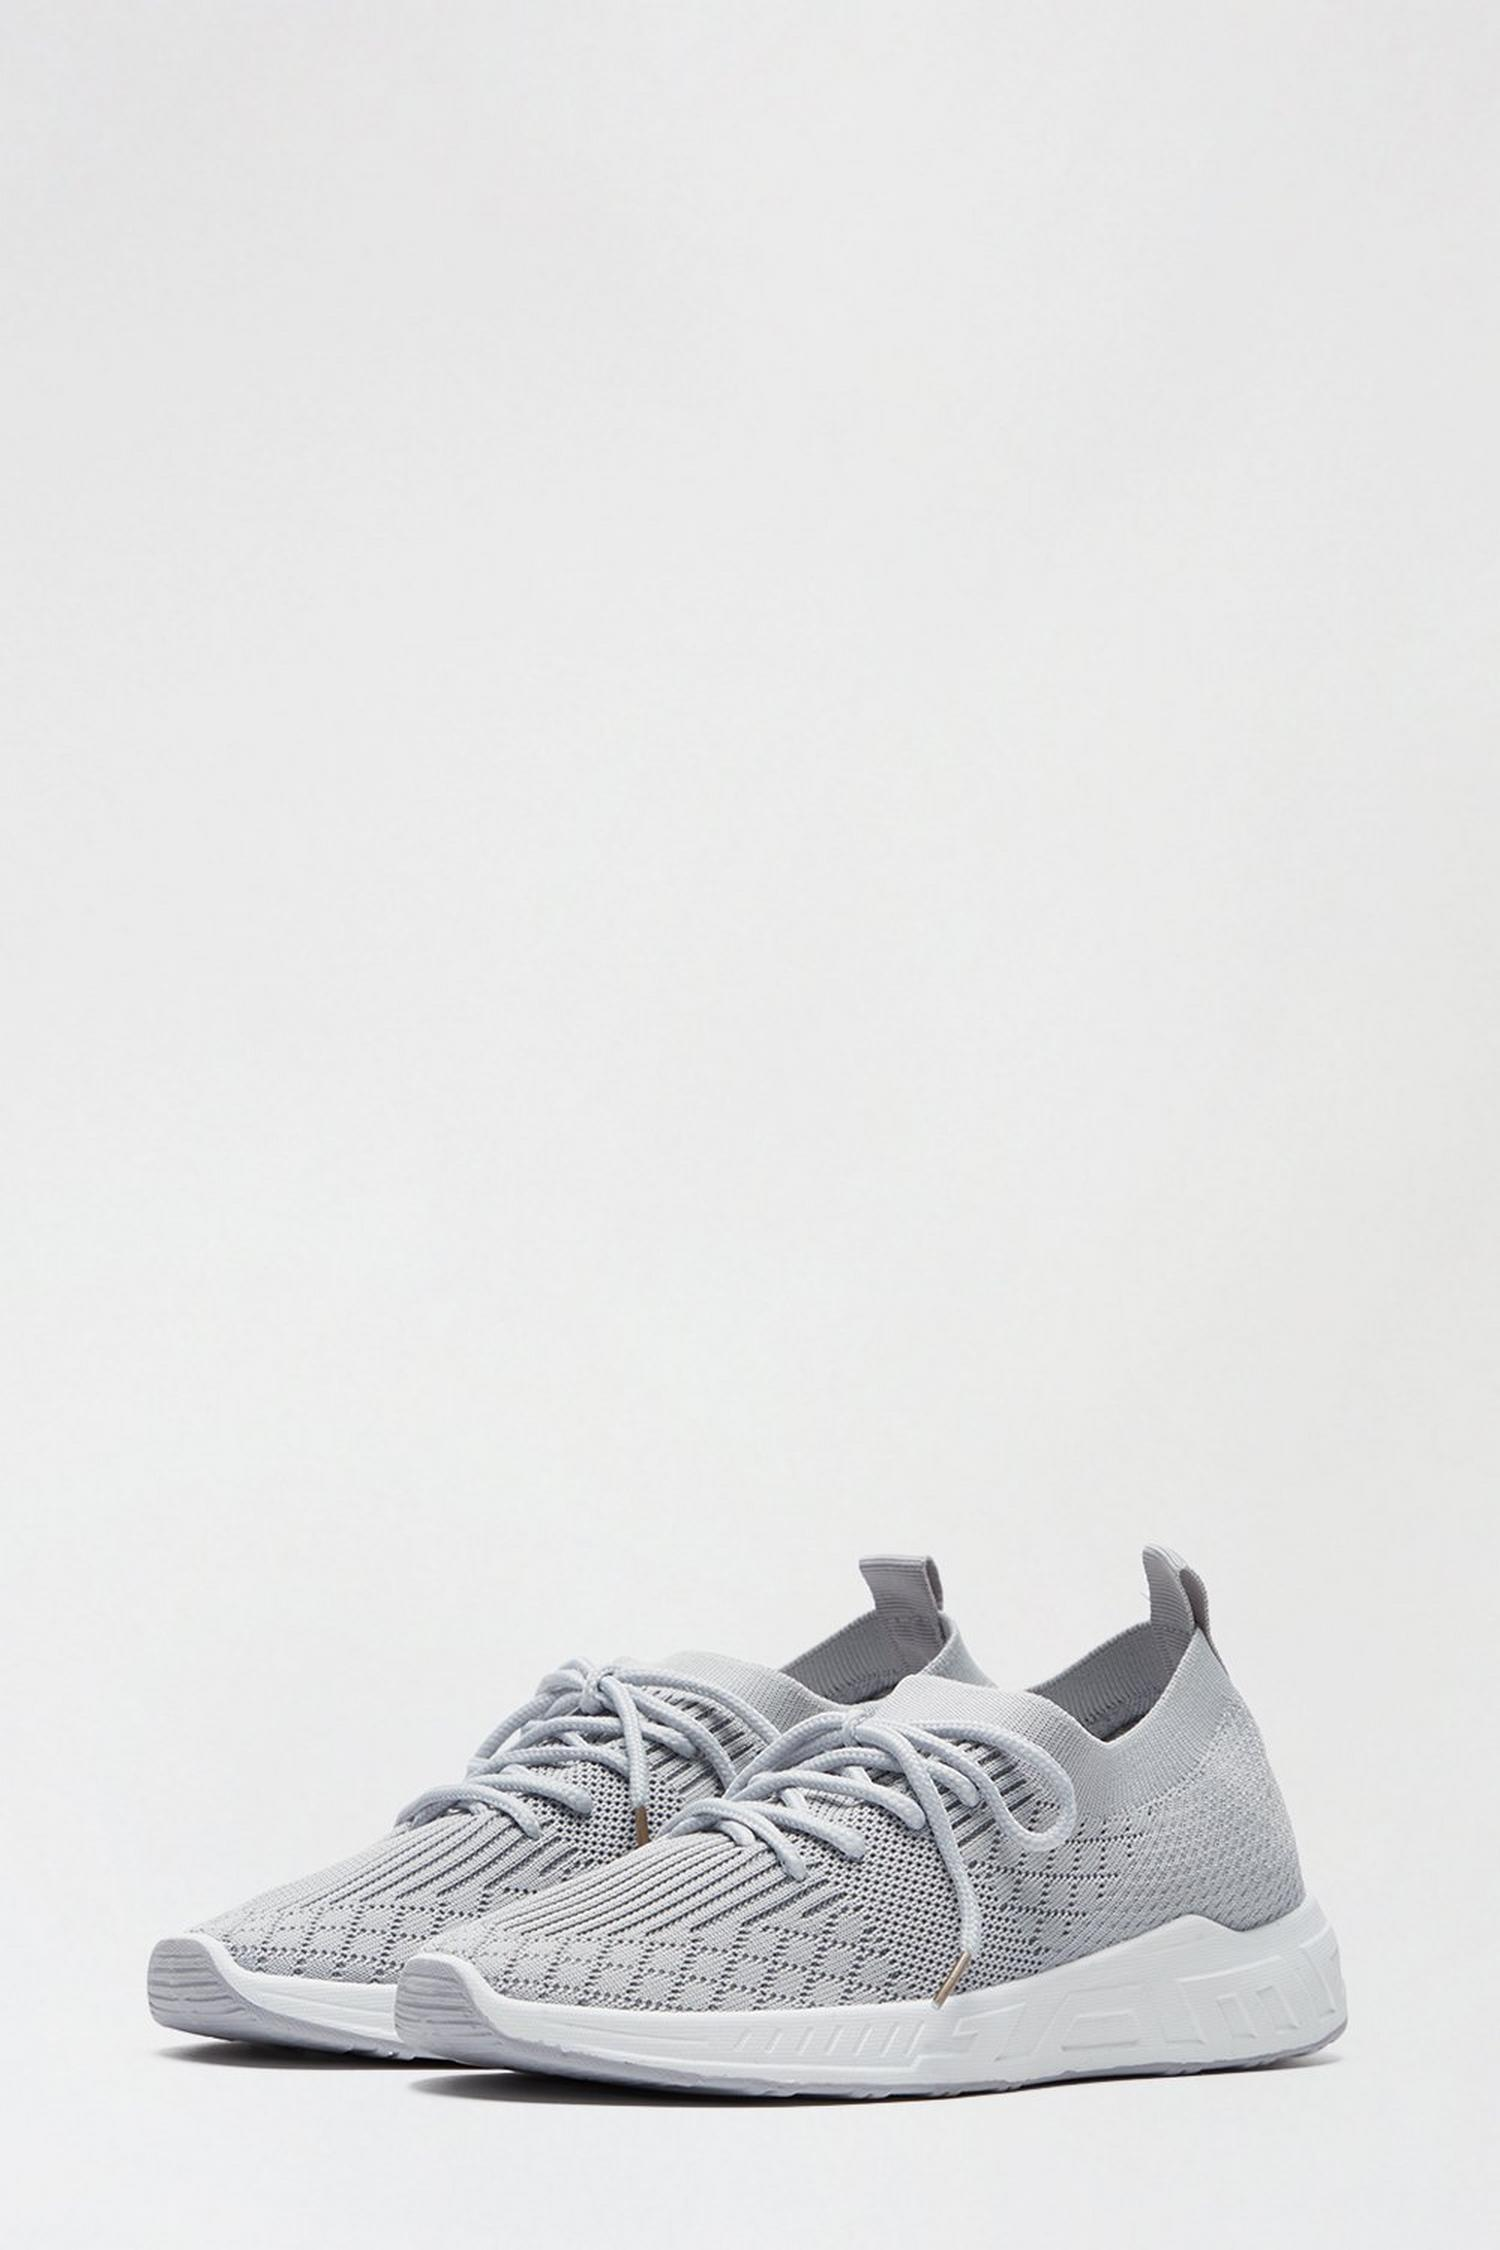 131 Grey Ivanna Knit Sports Trainer image number 2